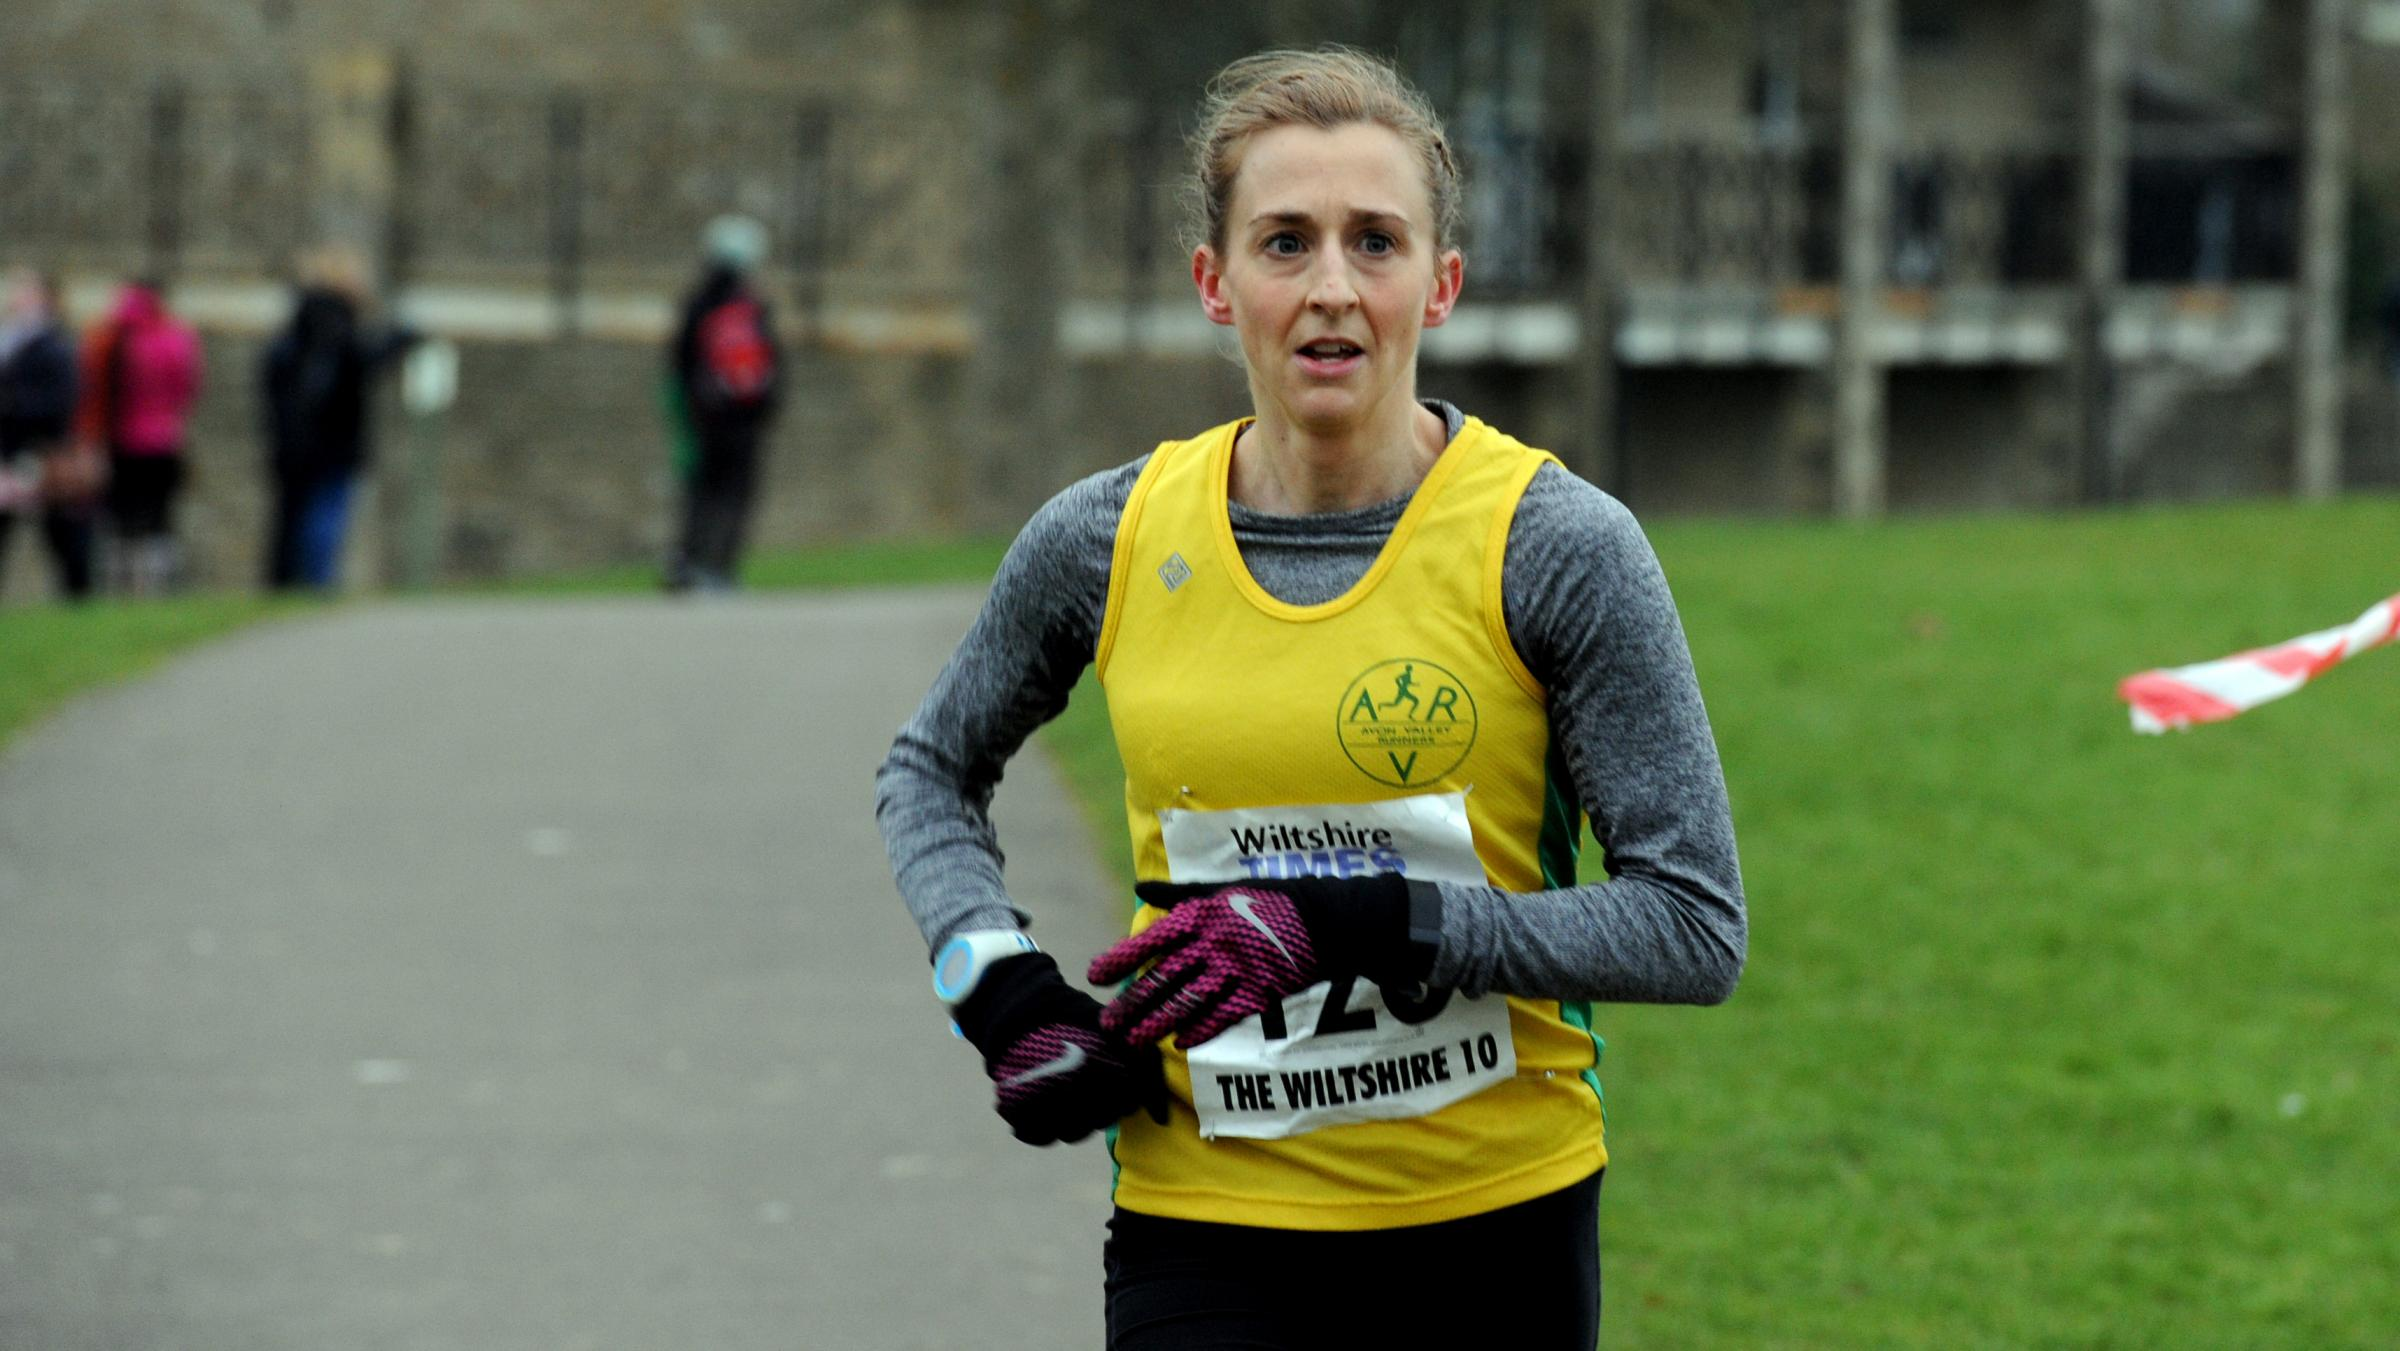 ATHLETICS: Barnes leading from the front for Wiltshire senior women